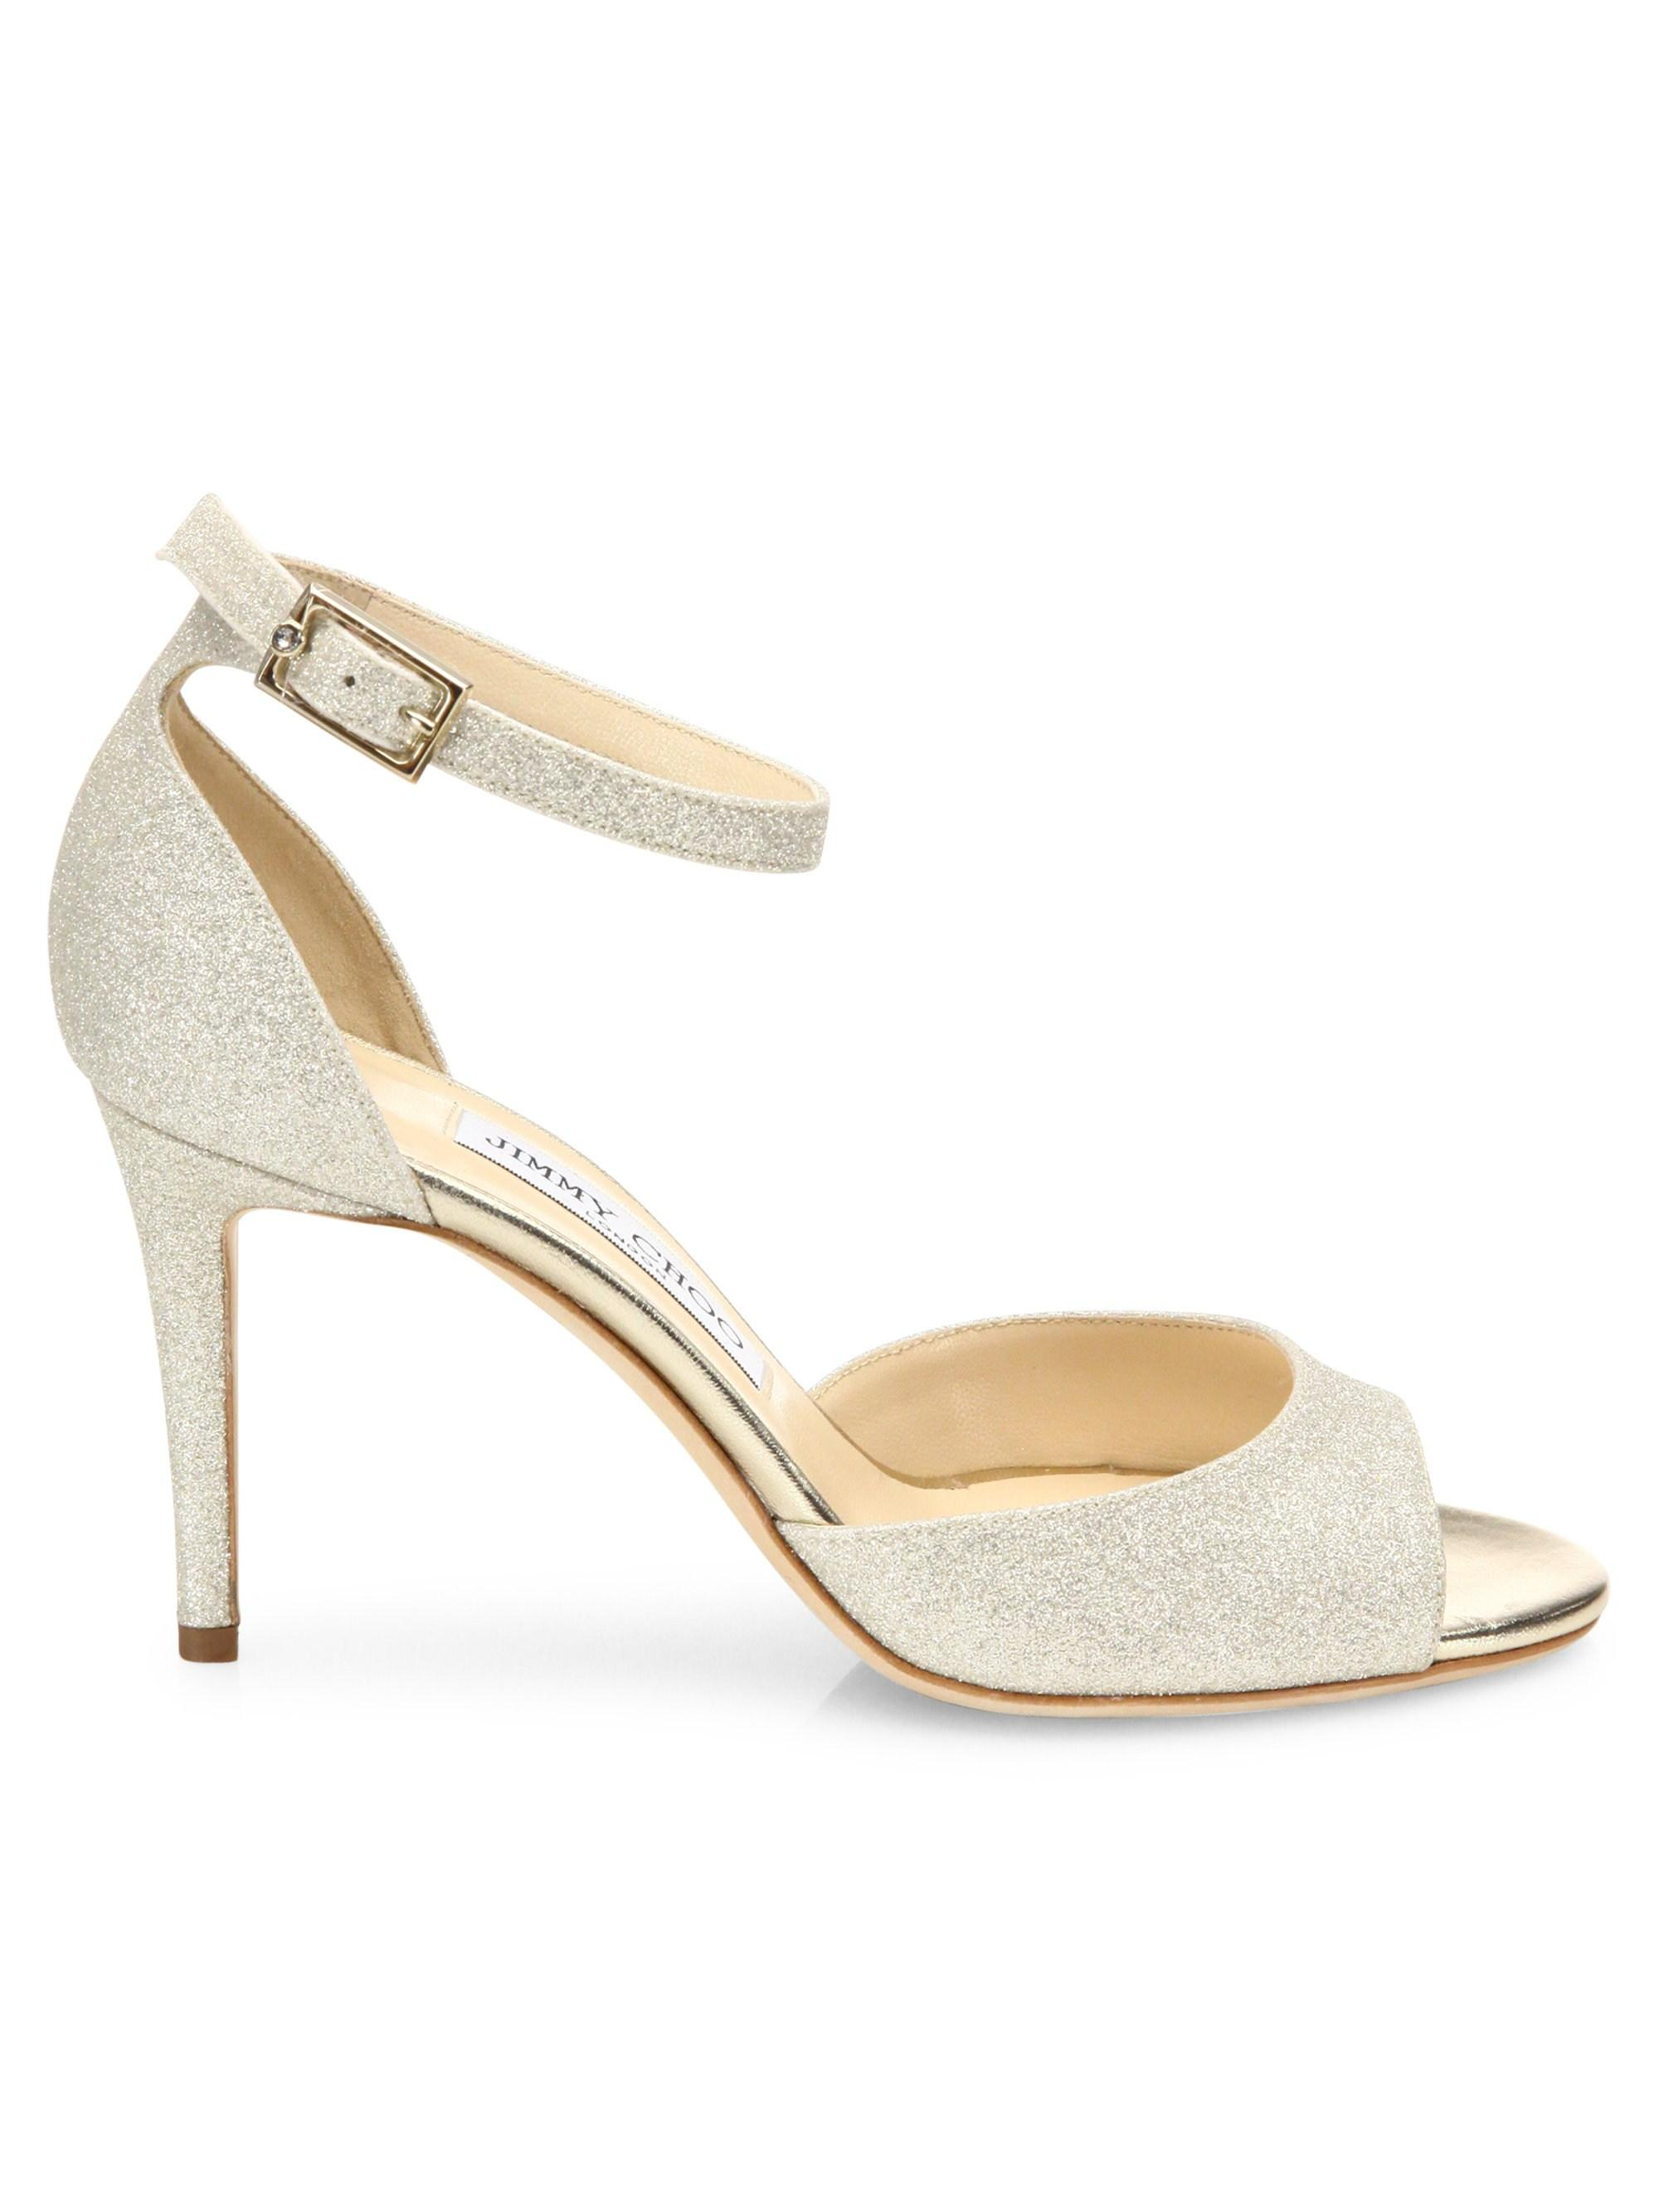 516dcc7f932 Lyst - Jimmy Choo Annie 85 Glitter D orsay Ankle-strap Sandals